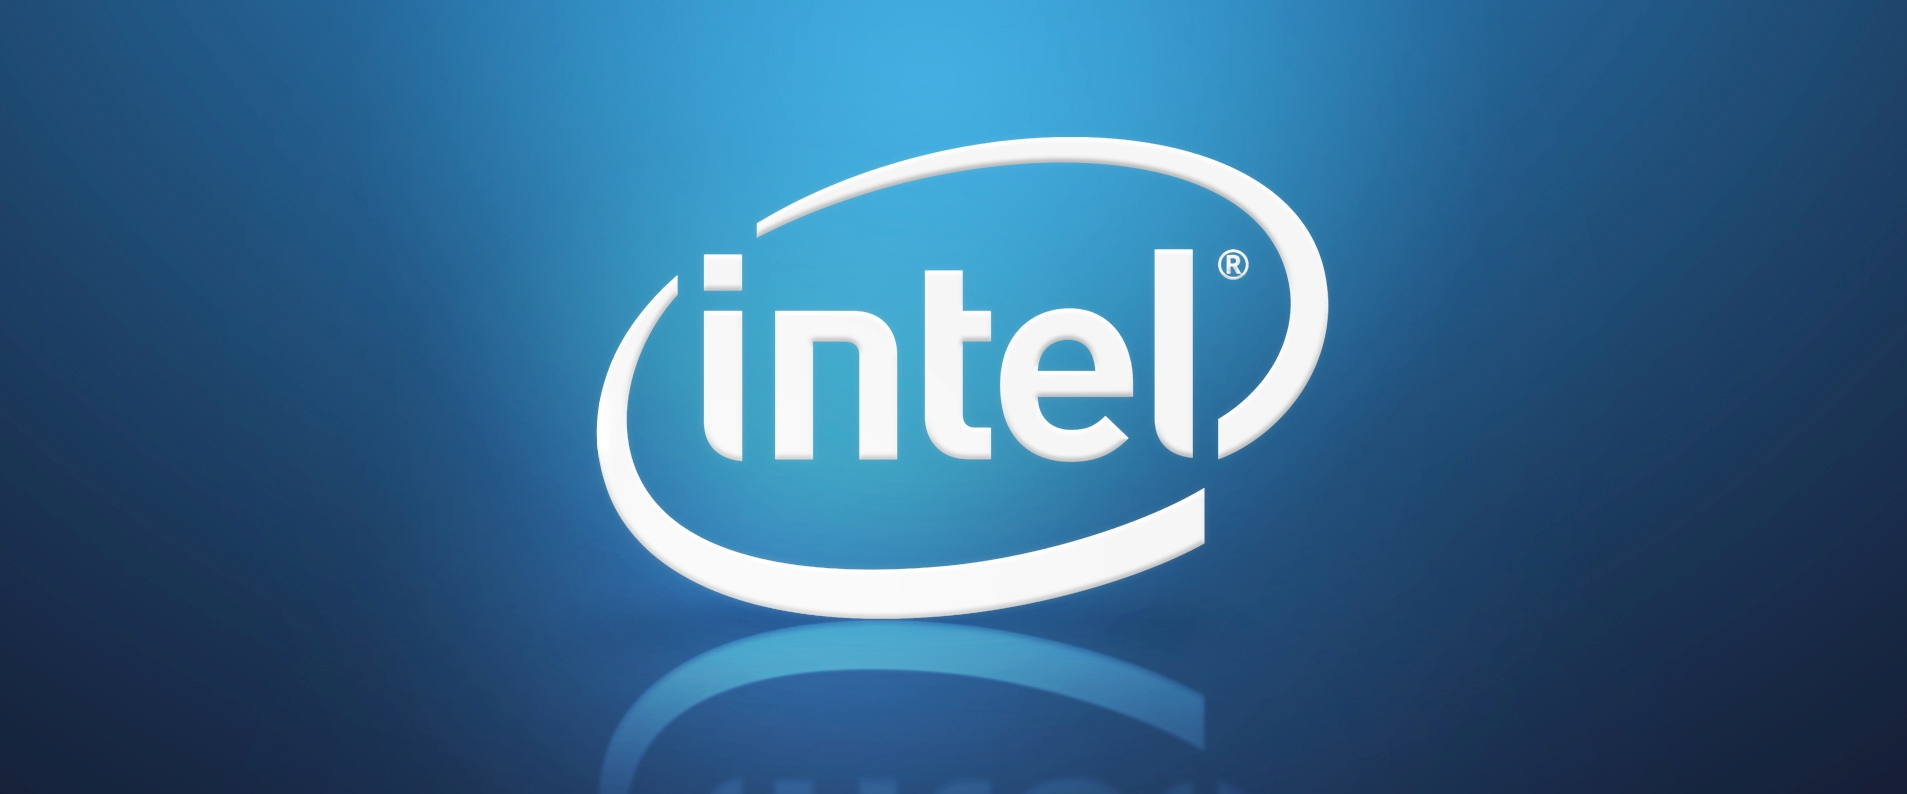 Earnings Disclaimer >> Intel Corporation (NASDAQ:INTC) Forms New Unit For Autonomous Car Projects - Market Exclusive